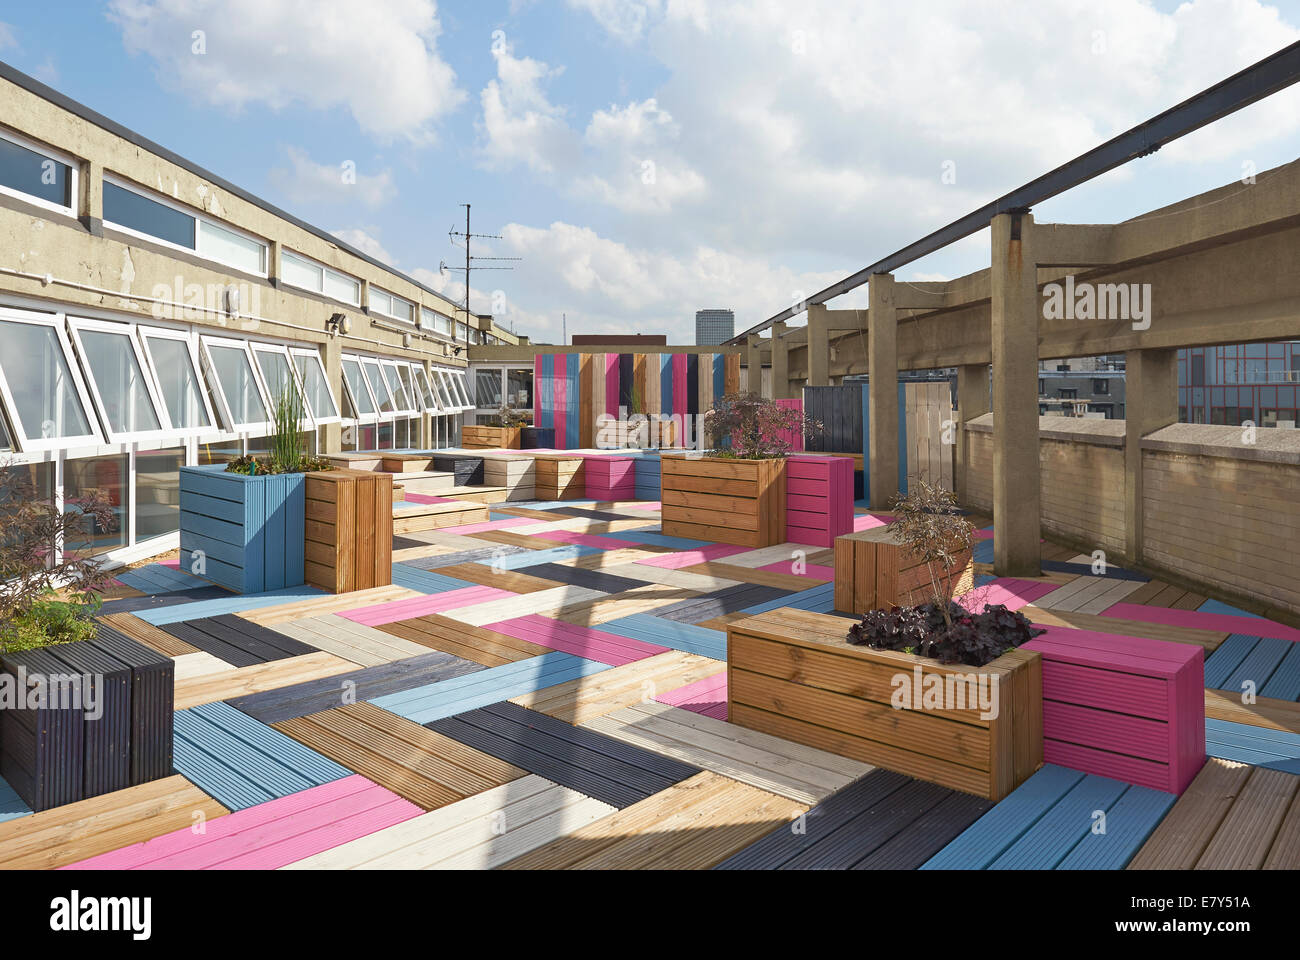 Overall View London College of Fashion Roof Terrace designed by Studio Weave - Stock Image